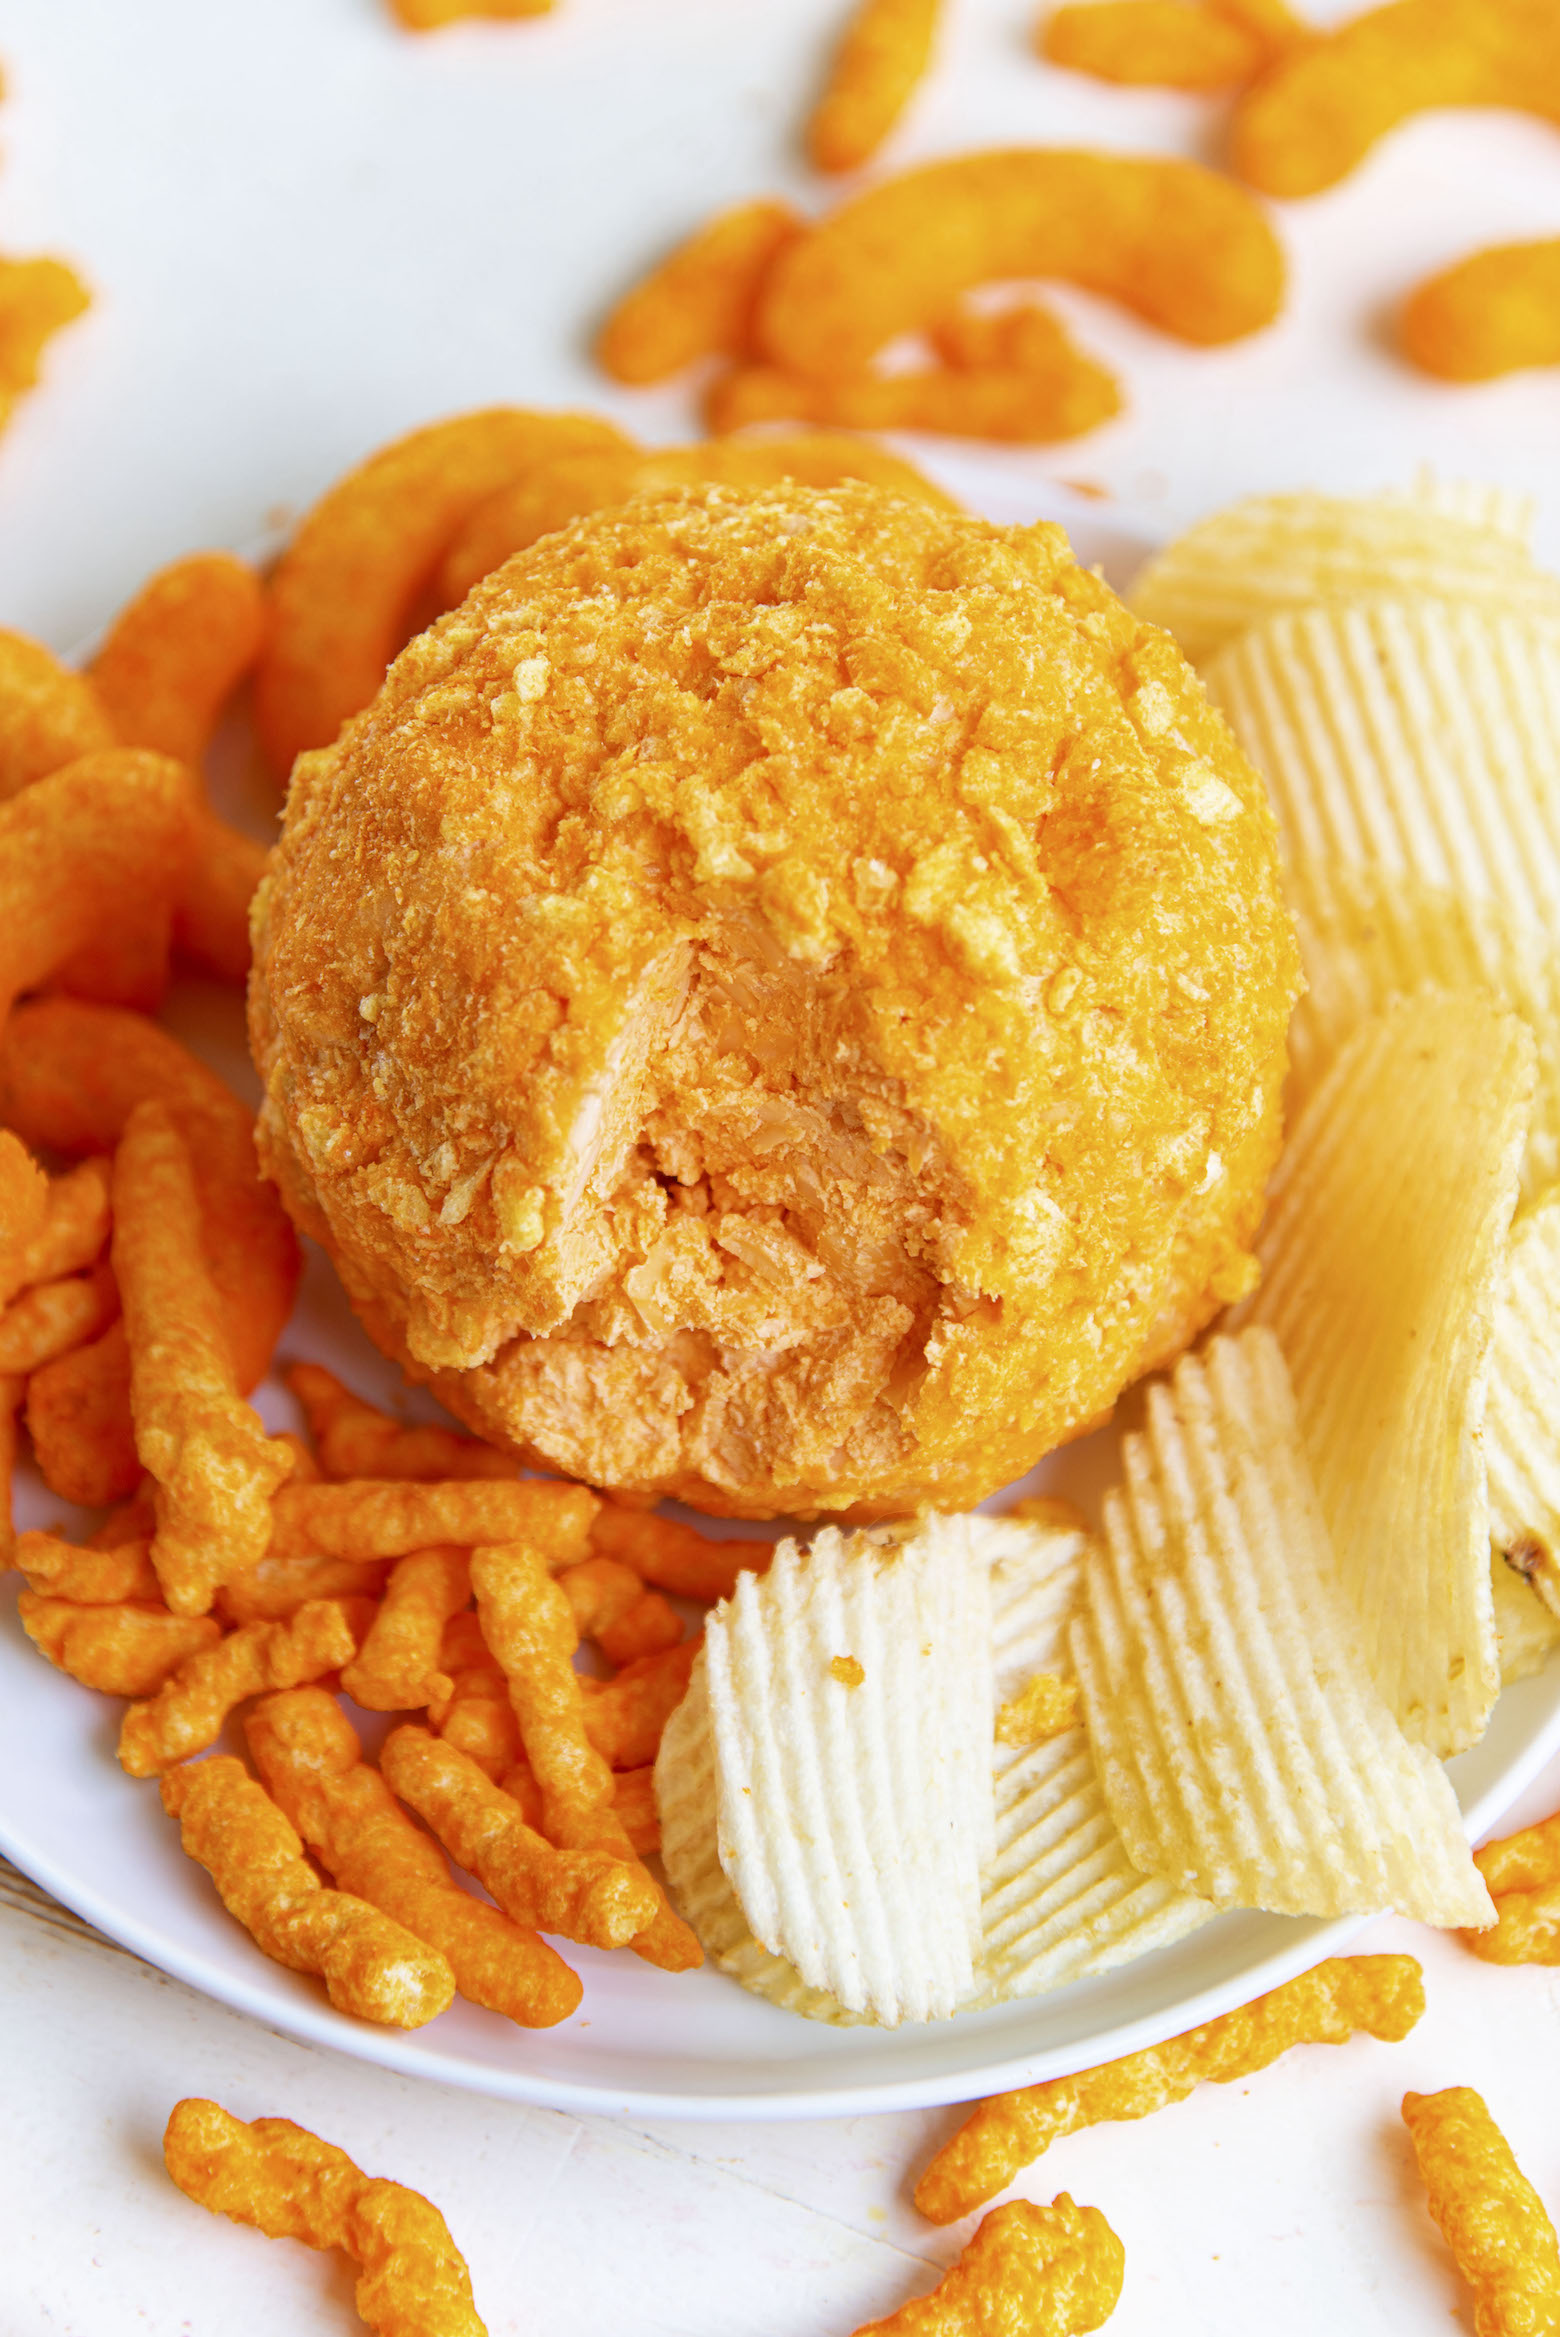 Three quarter shot of Cheetos Three Cheese Cheeseball with piece cut out.